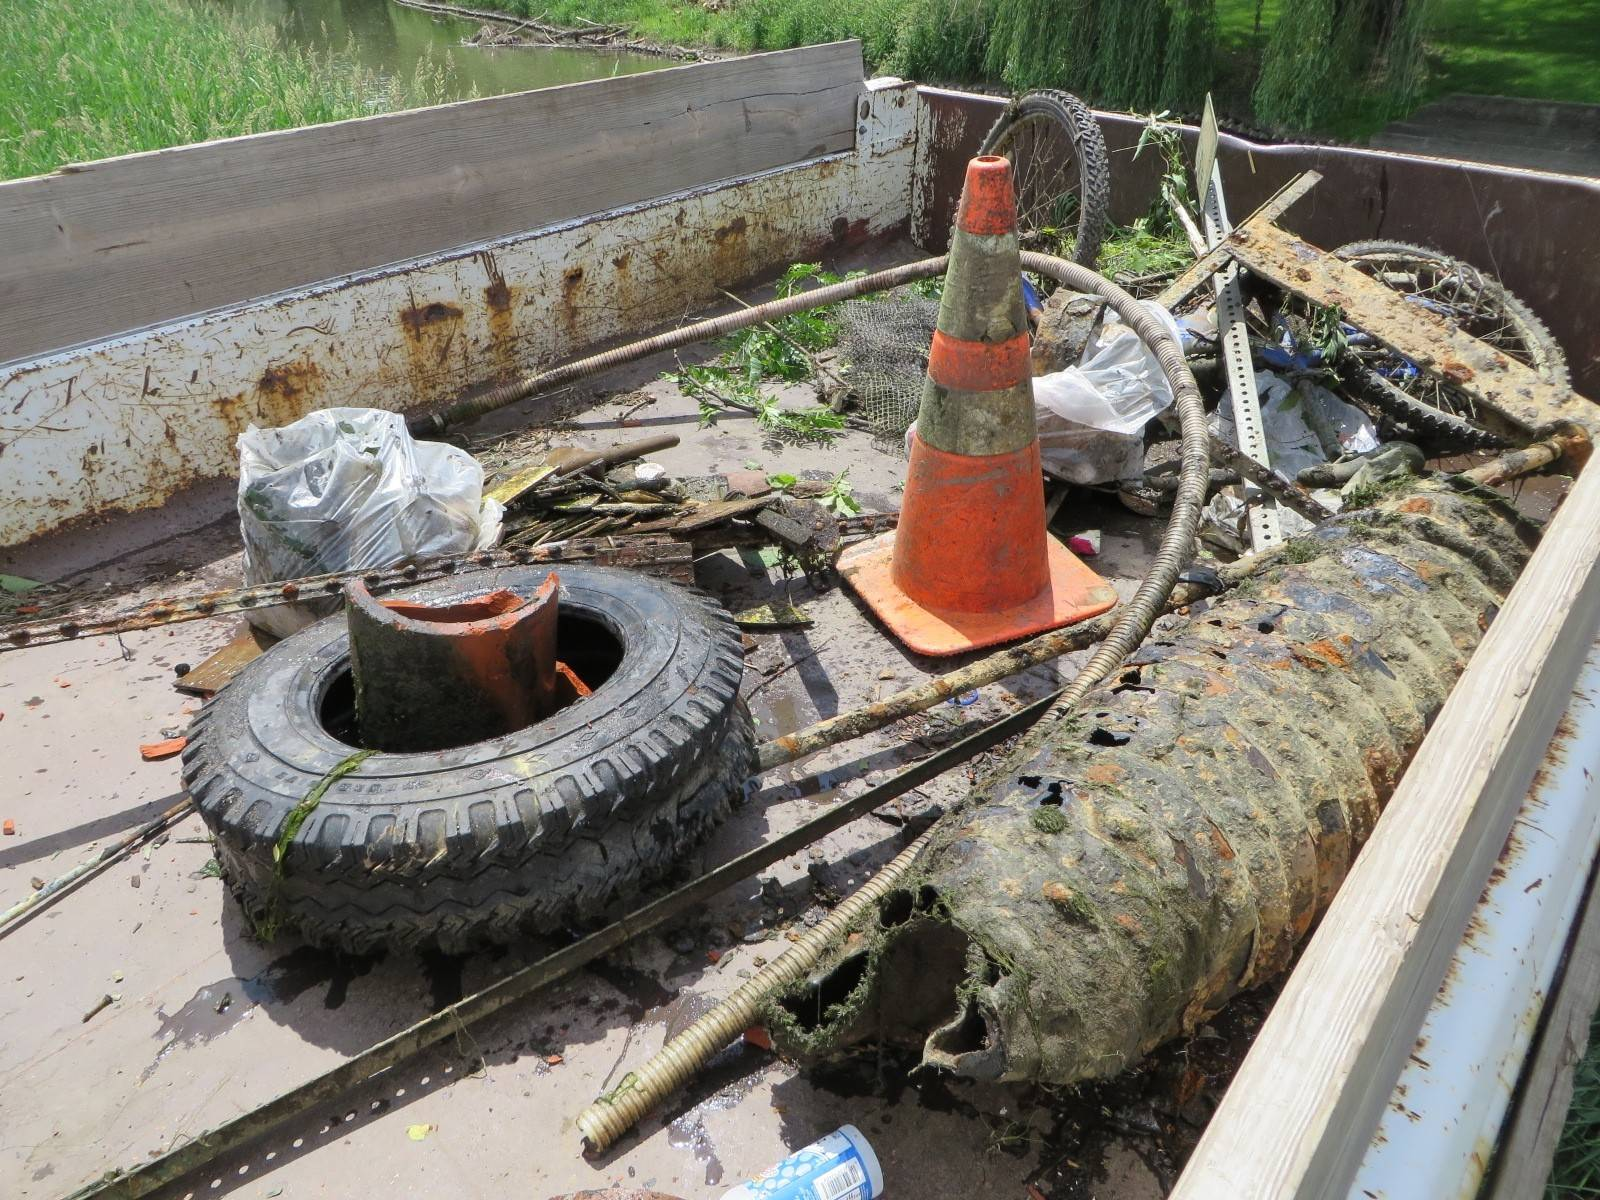 Among the debris removed from Salt Creek last weekend: a tire, construction cone and bicycle. Organizers say volunteers removed some 72 cubic yards of garbage during the 20th annual cleanup effort.